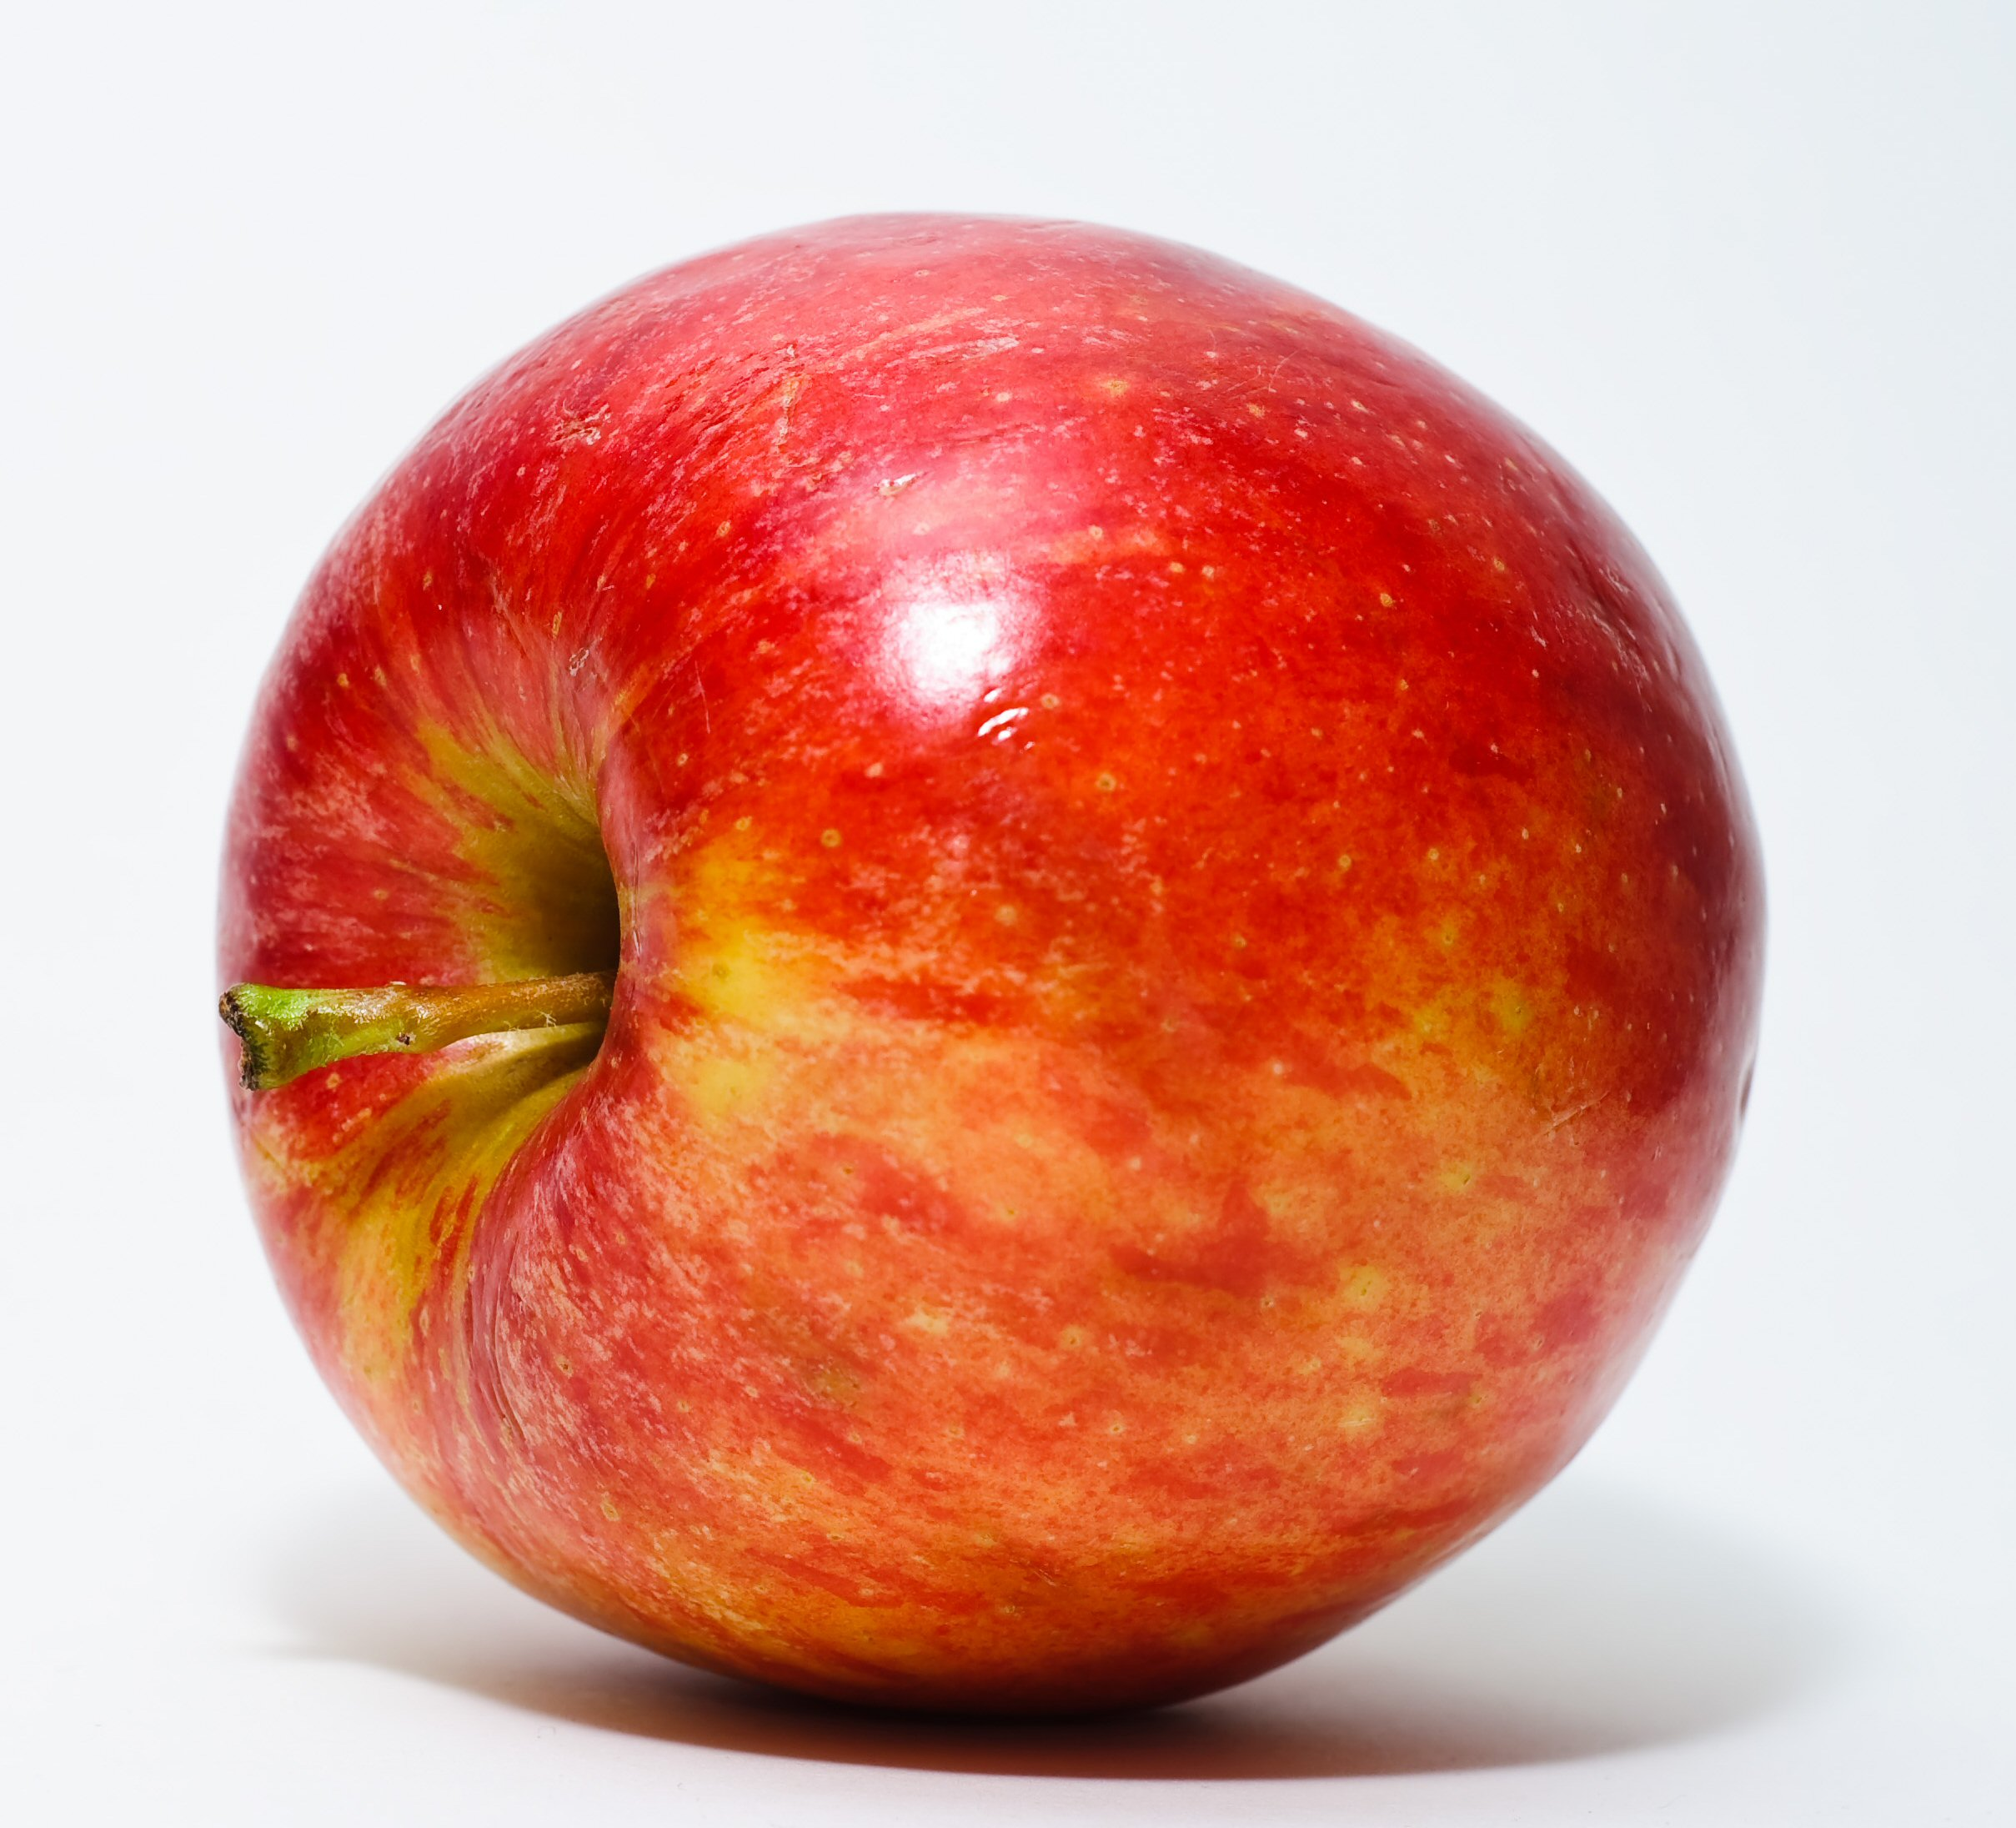 File:Red APPLE.jpg - Wikimedia Commons